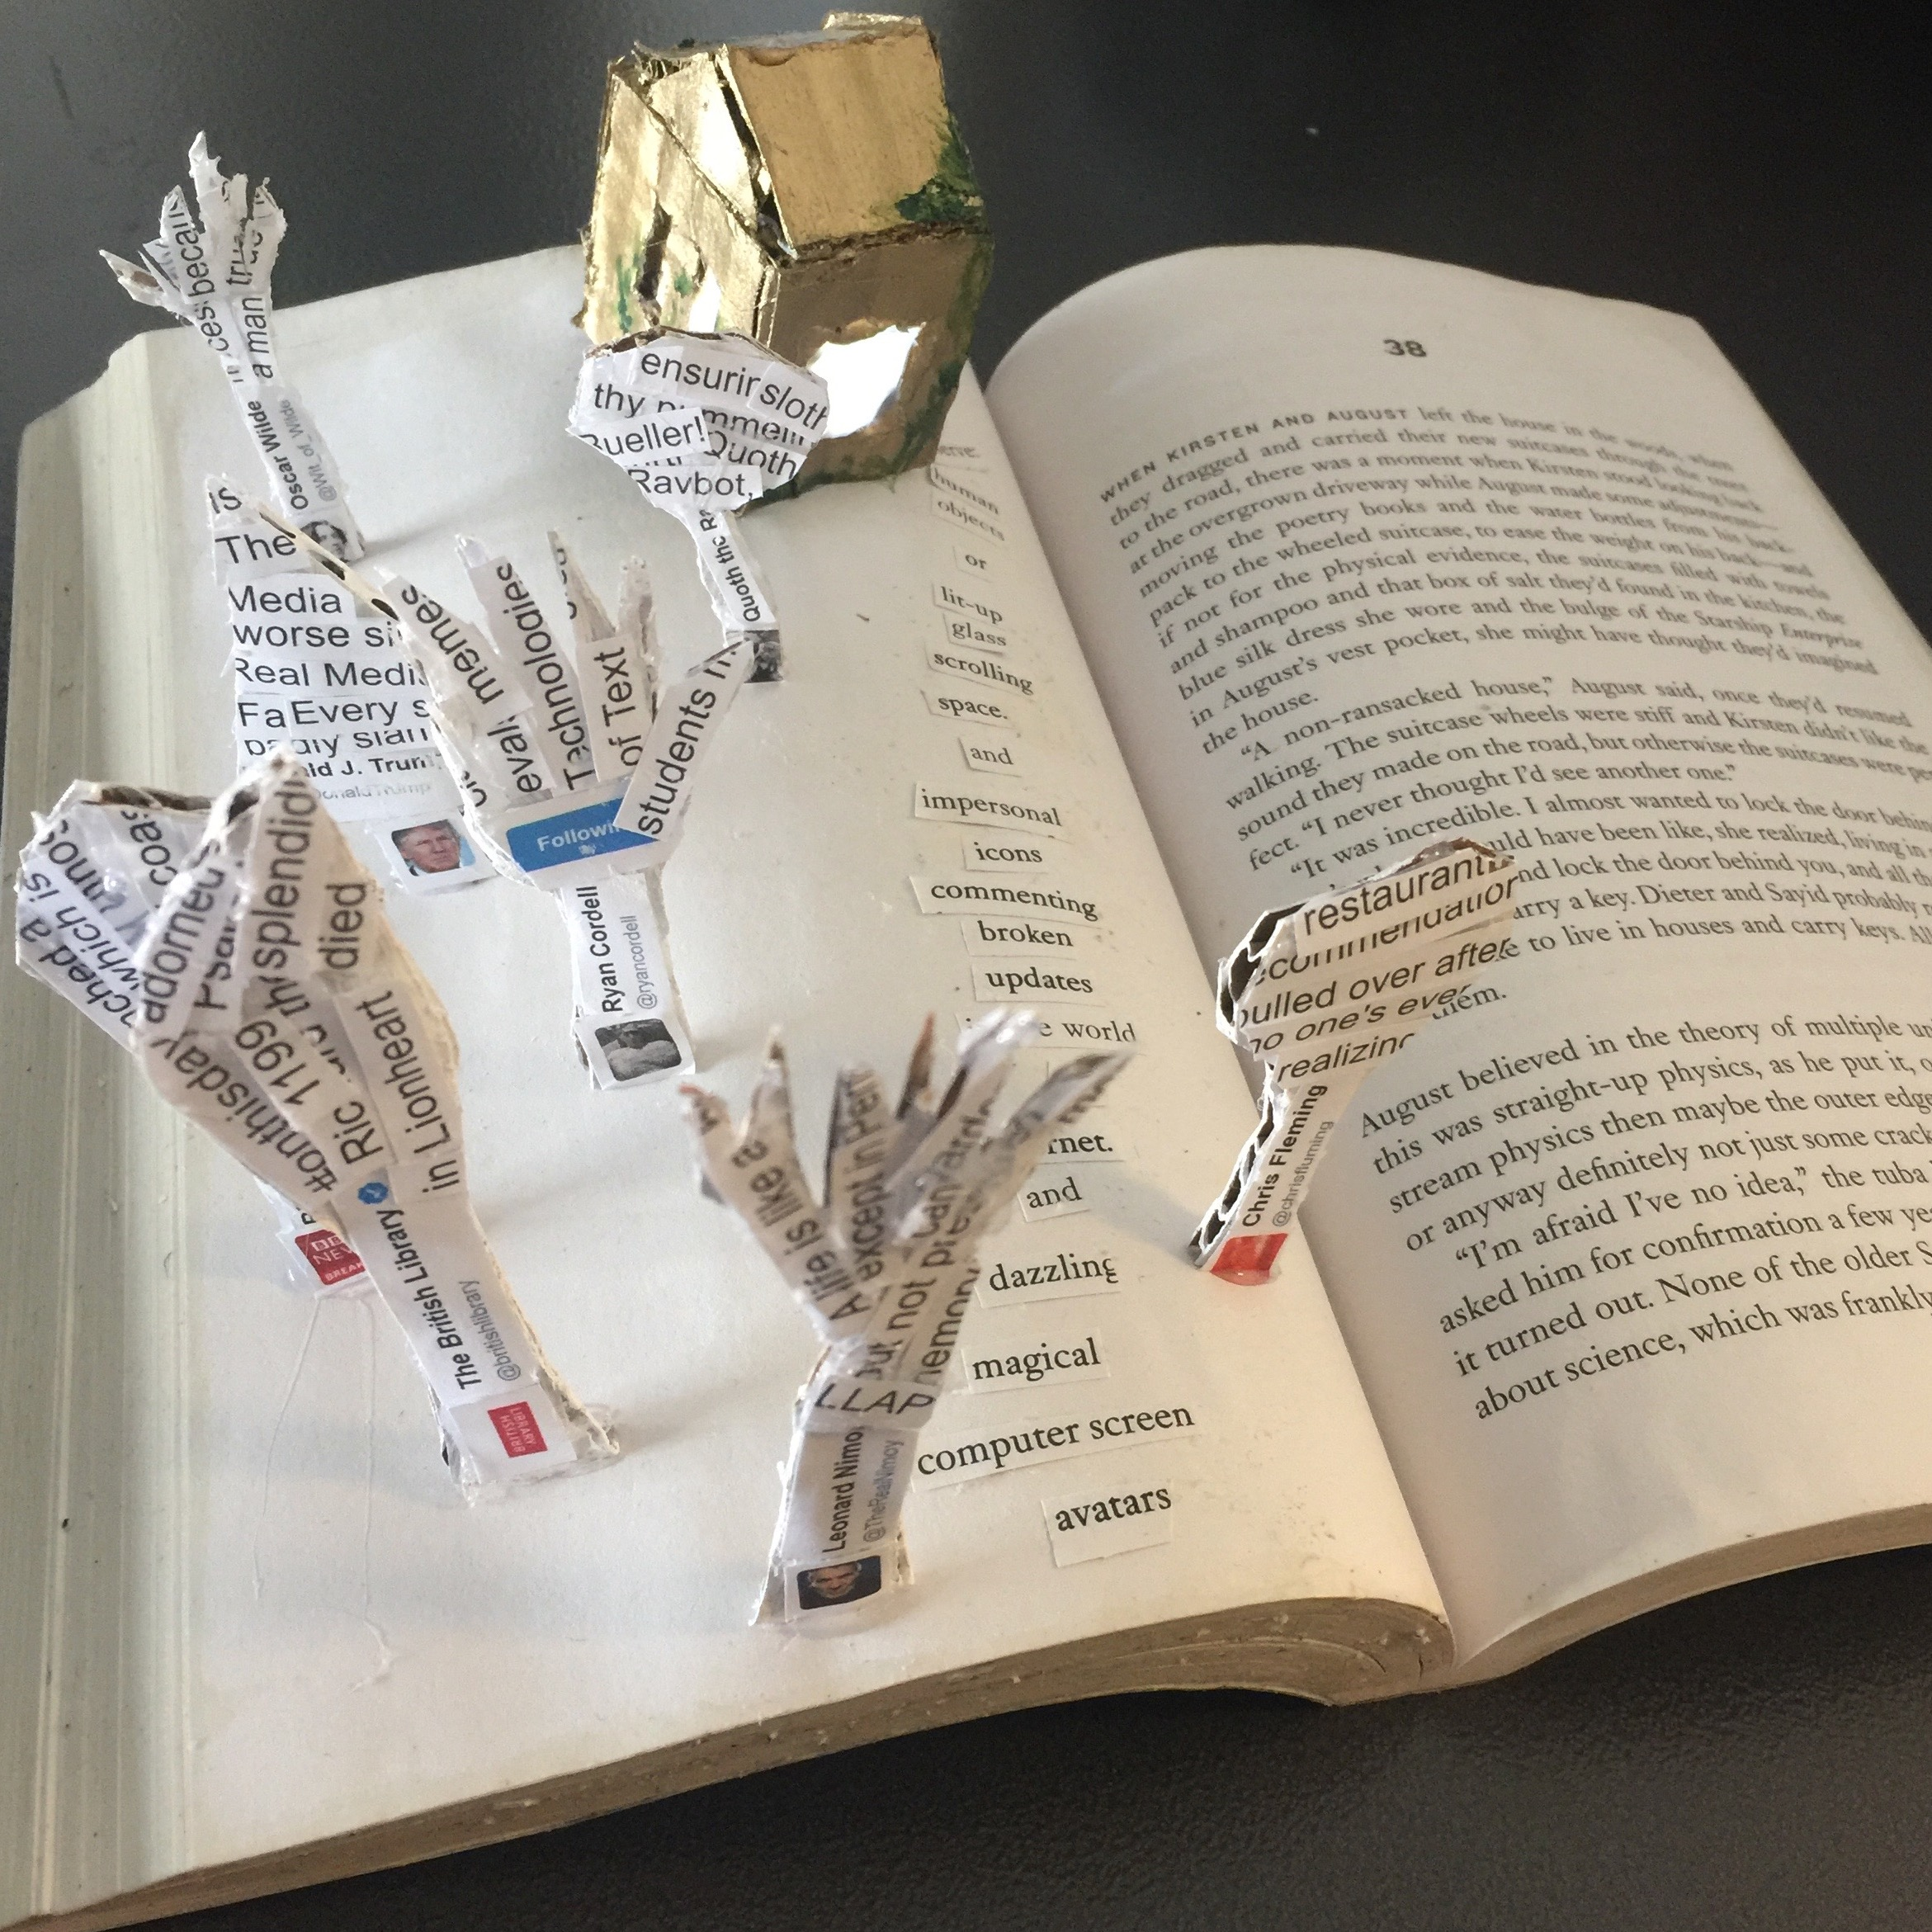 An altered book project by a former ToT student.